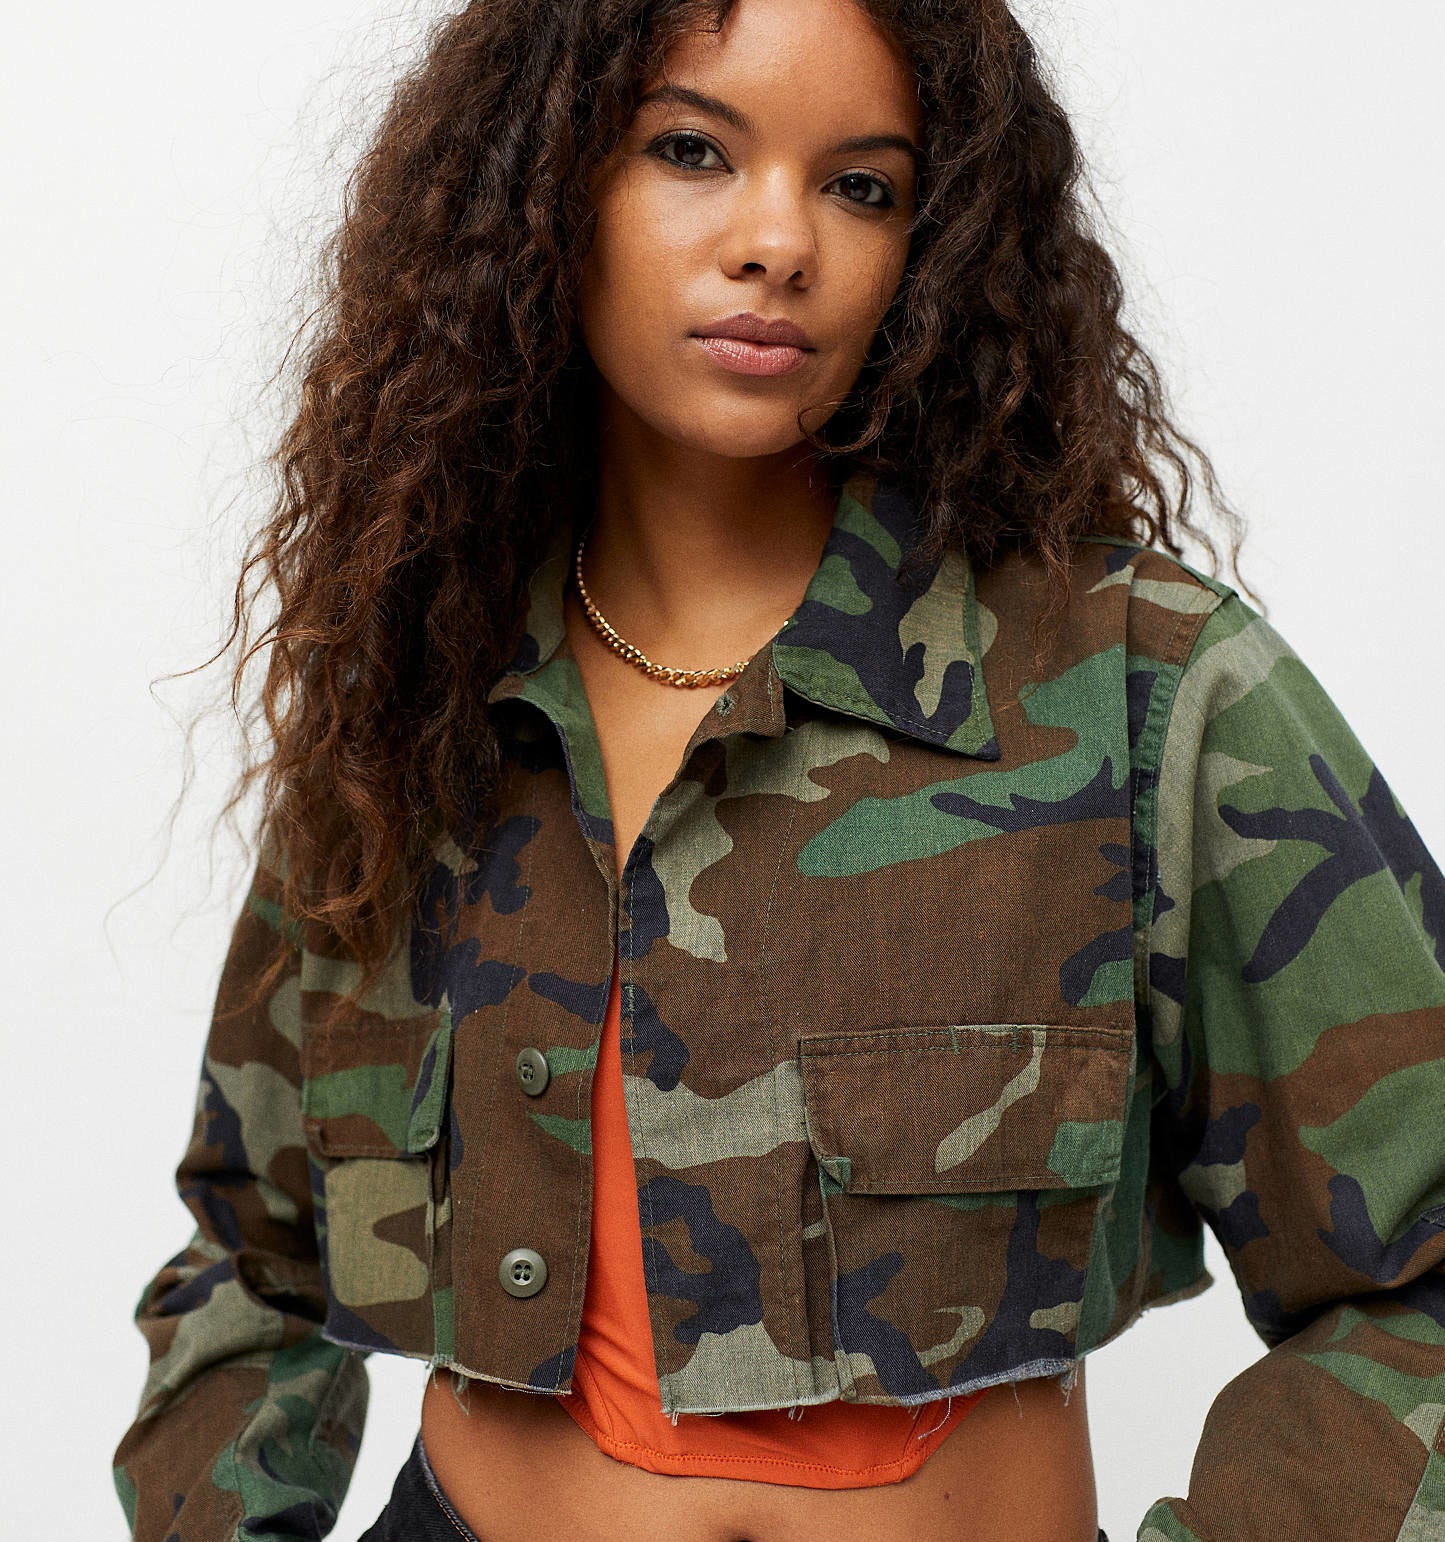 a person wearing a cropped camo jacket